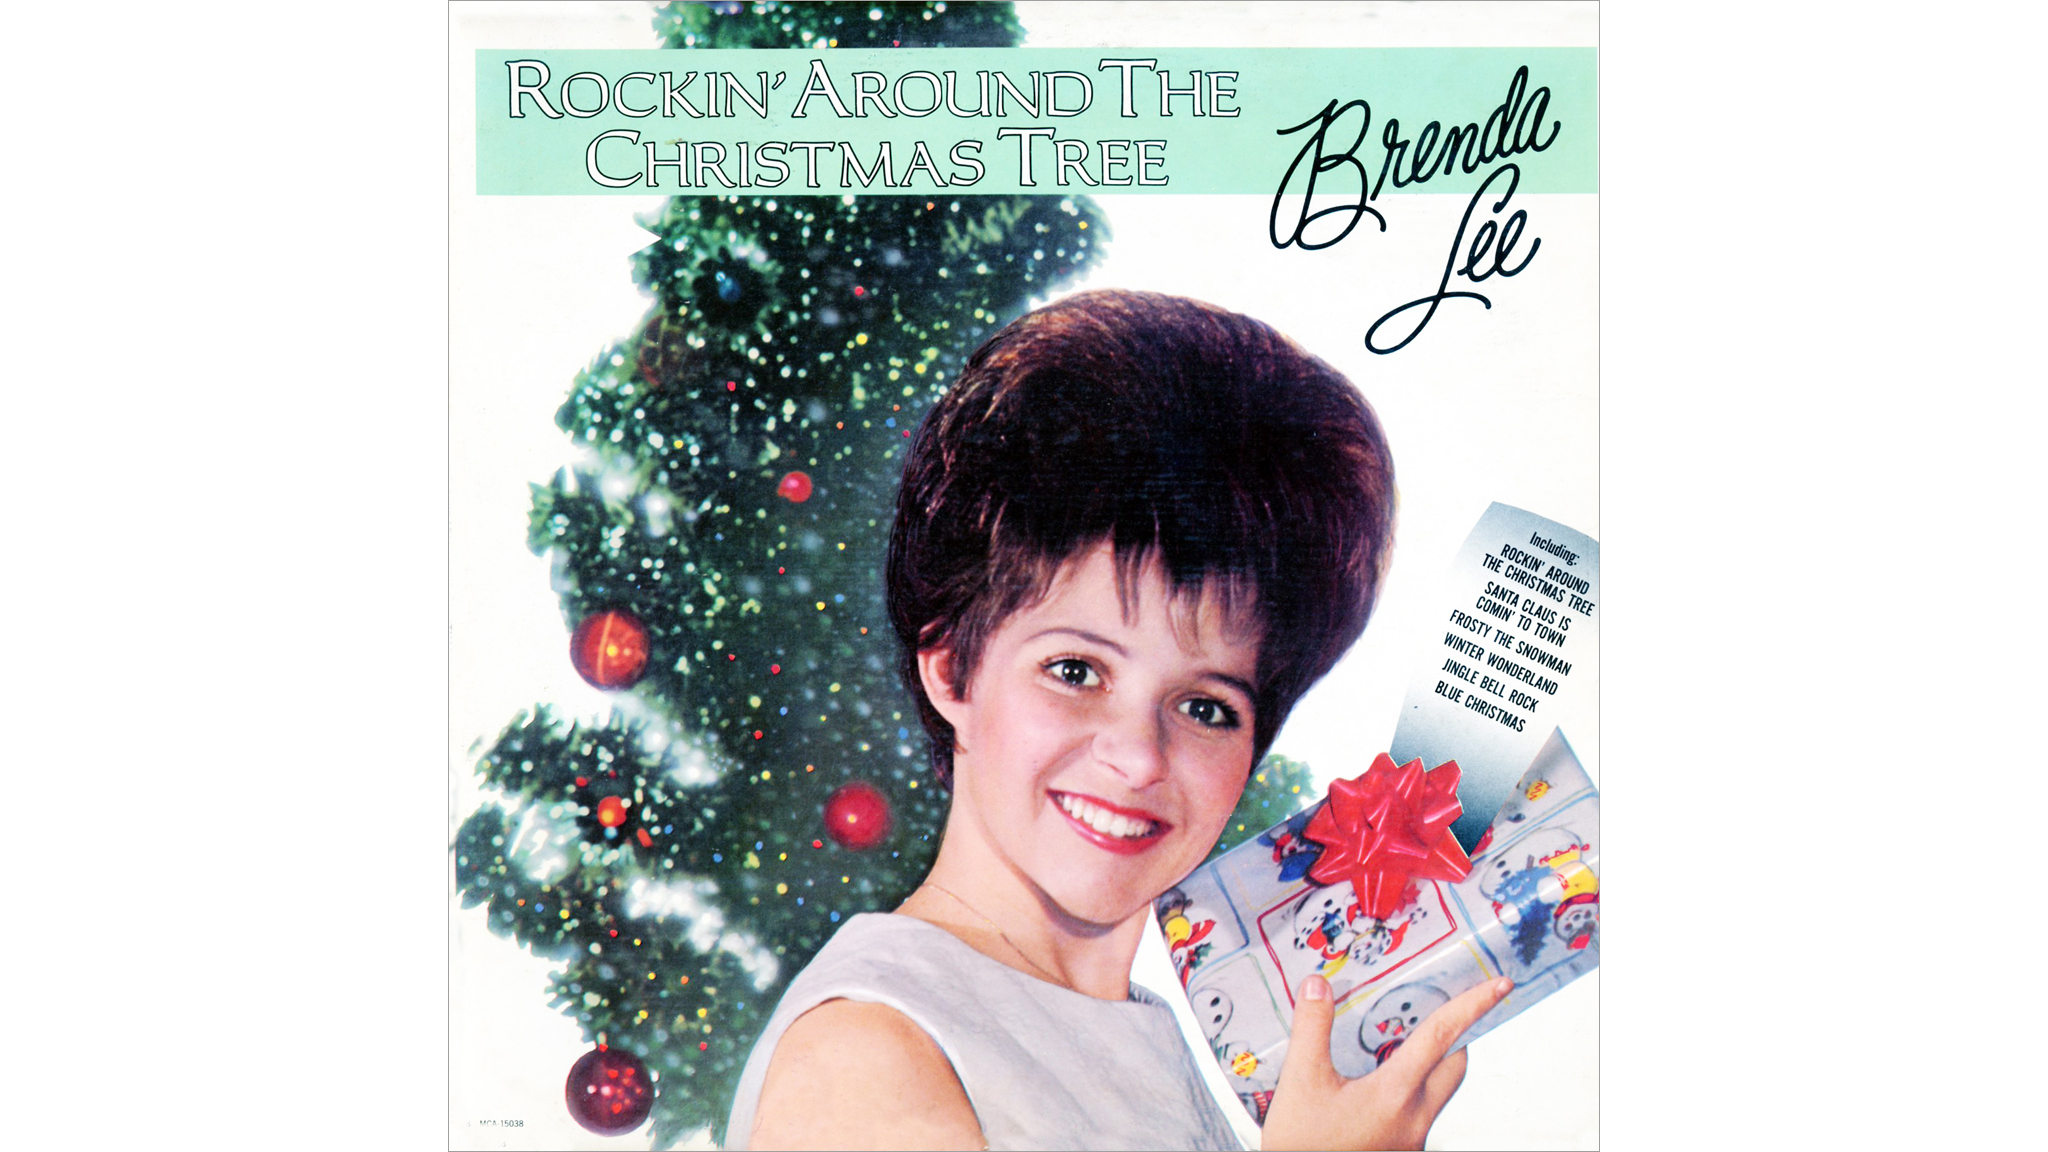 'Rockin' Around the Christmas Tree' – Brenda Lee